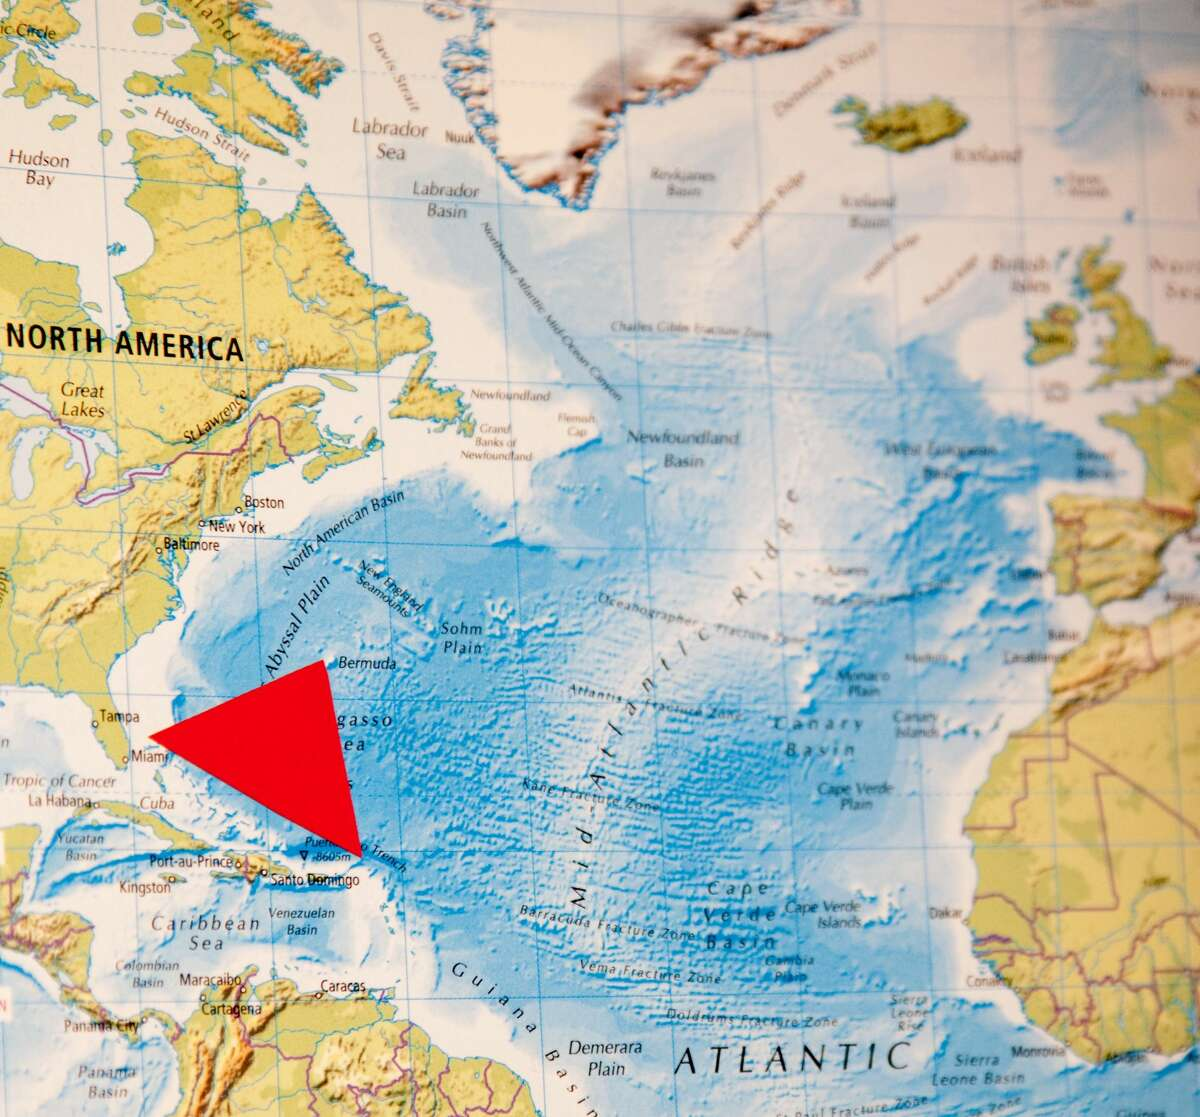 Bermuda Triangle This map shows the imaginary Bermuda Triangle, which extends roughly from Miami, Fla., to the islands of Puerto Rico and Bermuda. Stories of lost ships in the area date back to the 1600s, but the term